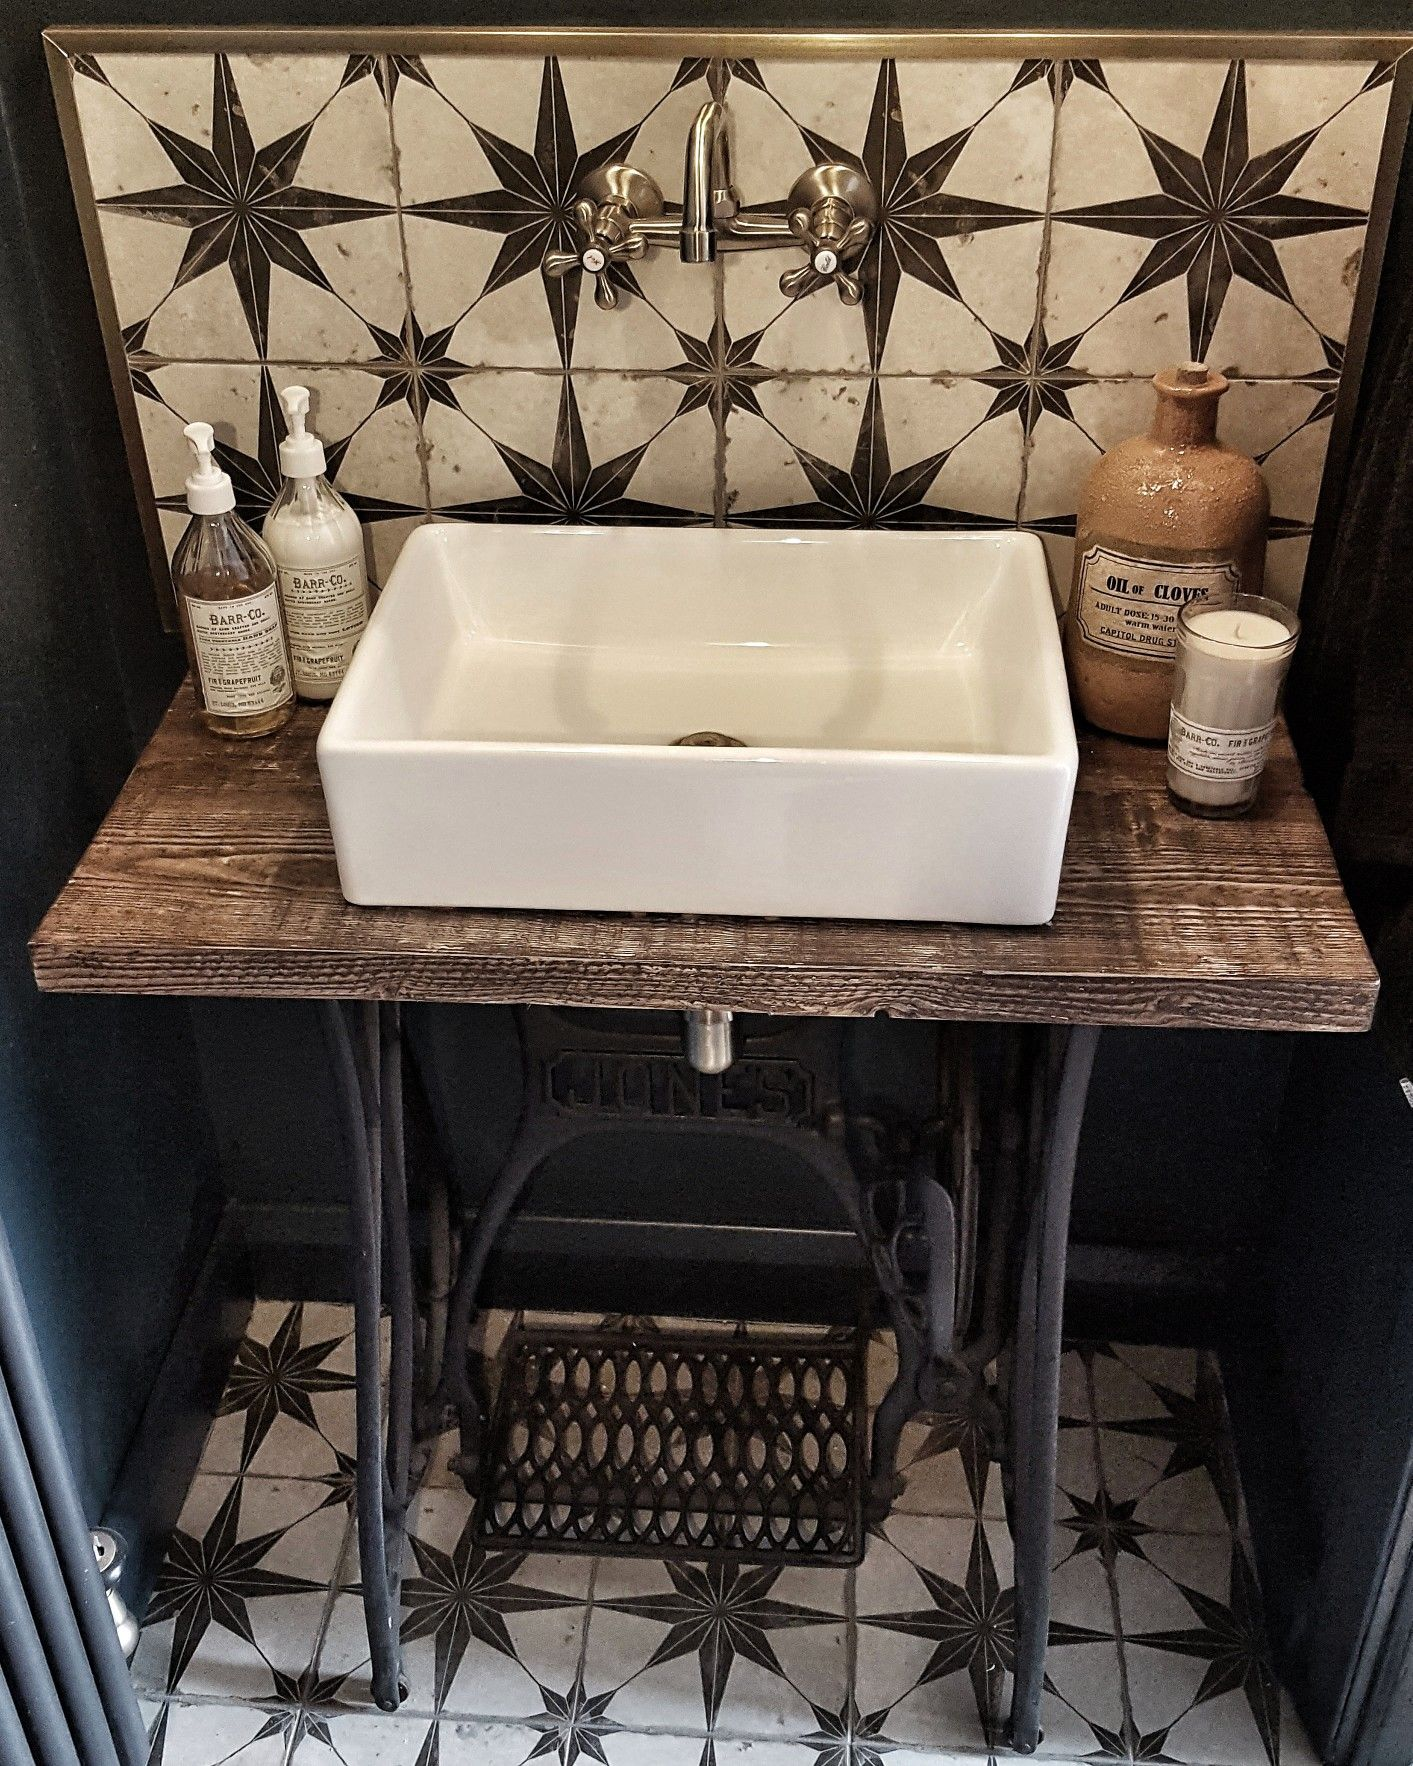 Sewing machine table in bathroom, star tile backsplash, sink basin on unit, quirky bathroom, Farrow and Ball Hague Blue, downstairs toilet, funky toilet, square sink. See more at insta acct: dreambound1974 #downstairsloo